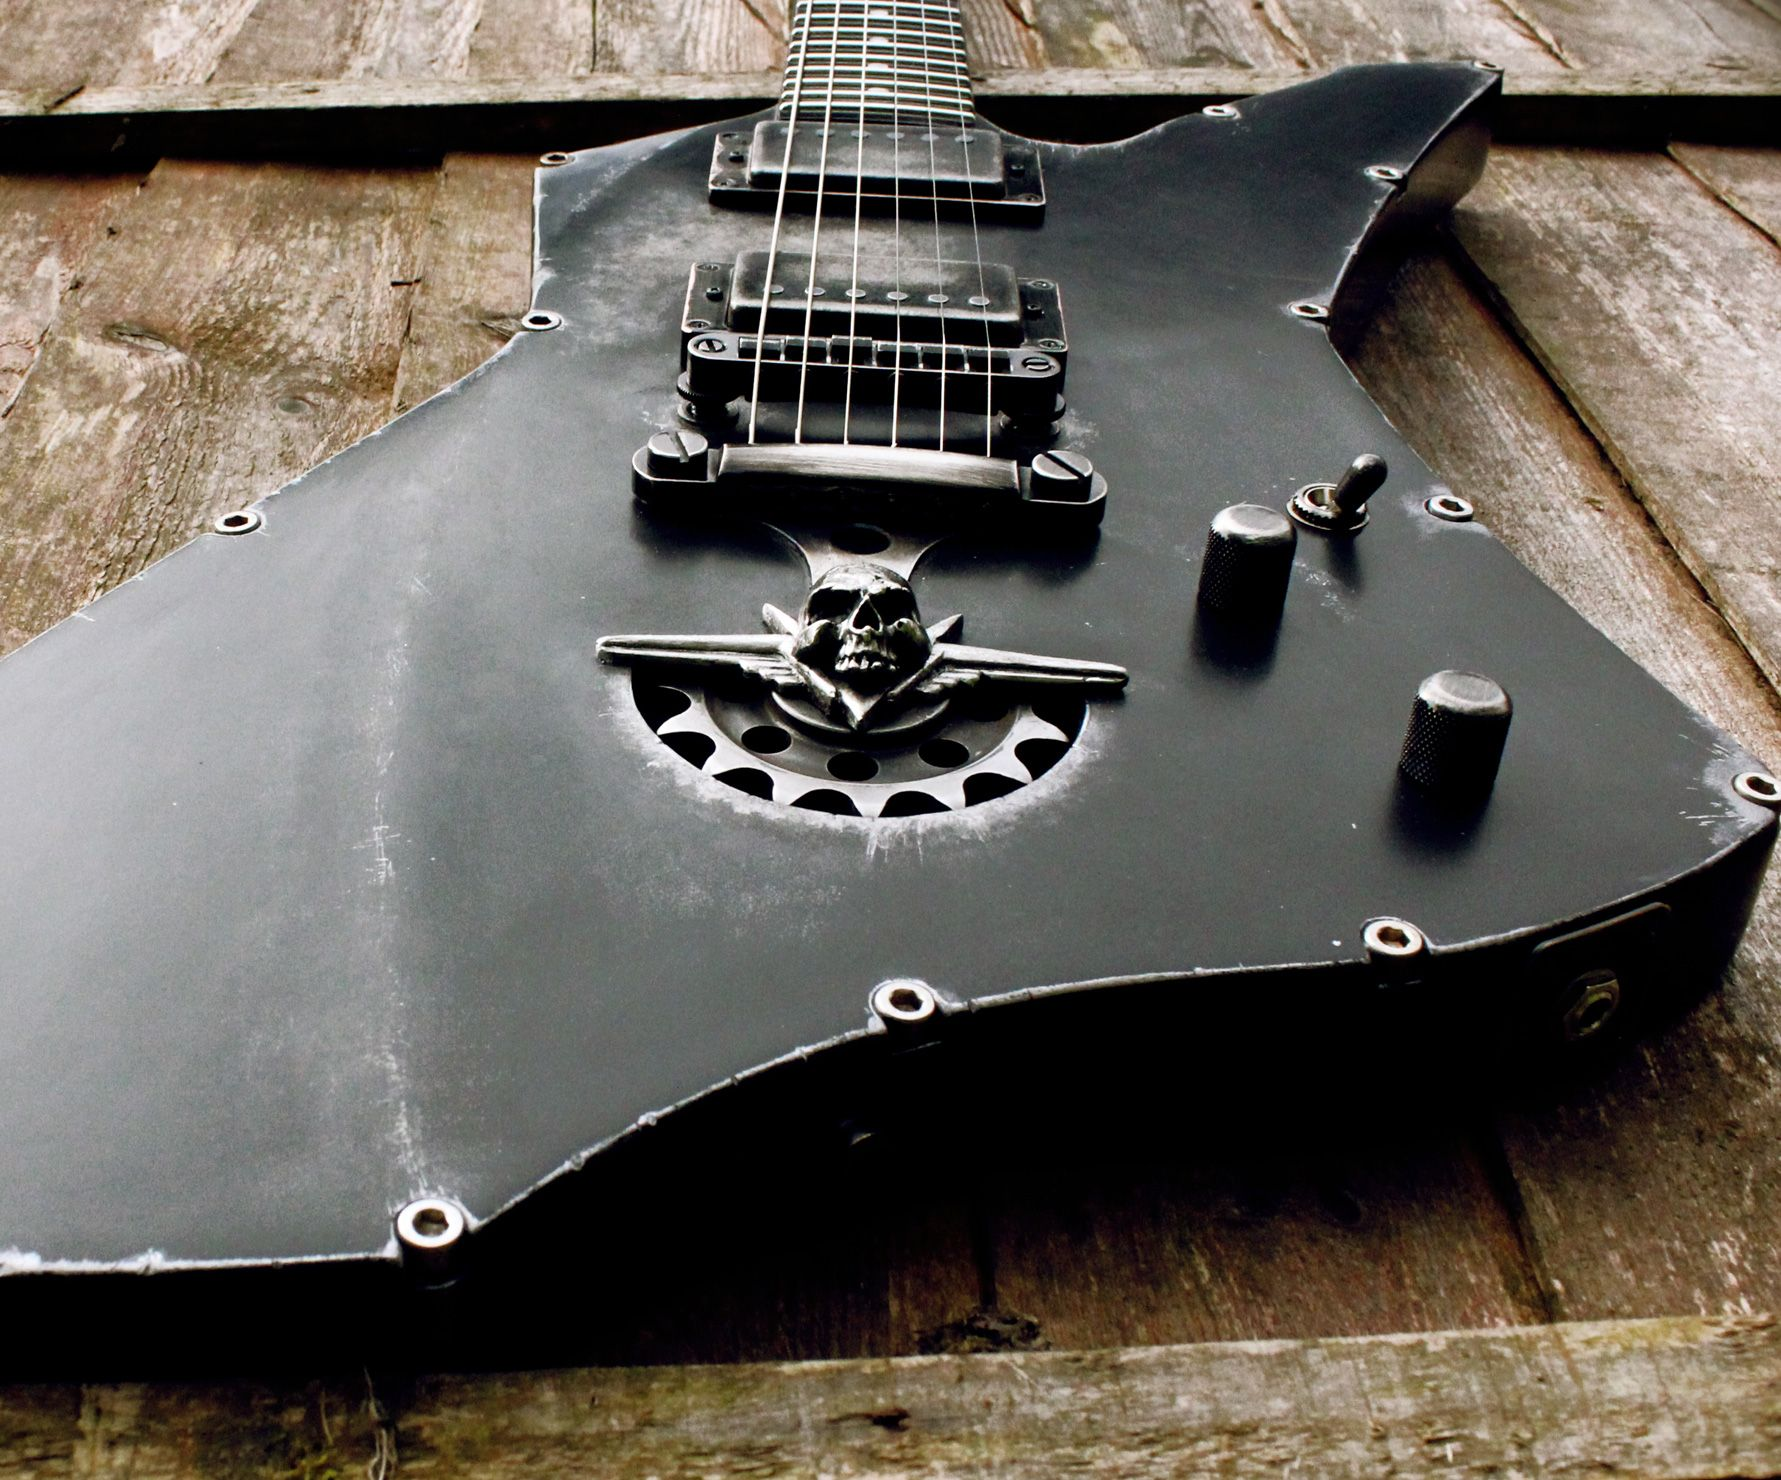 ESP Snakebyte Steel Top Hutchinson Guitar Concepts for James Hetfield